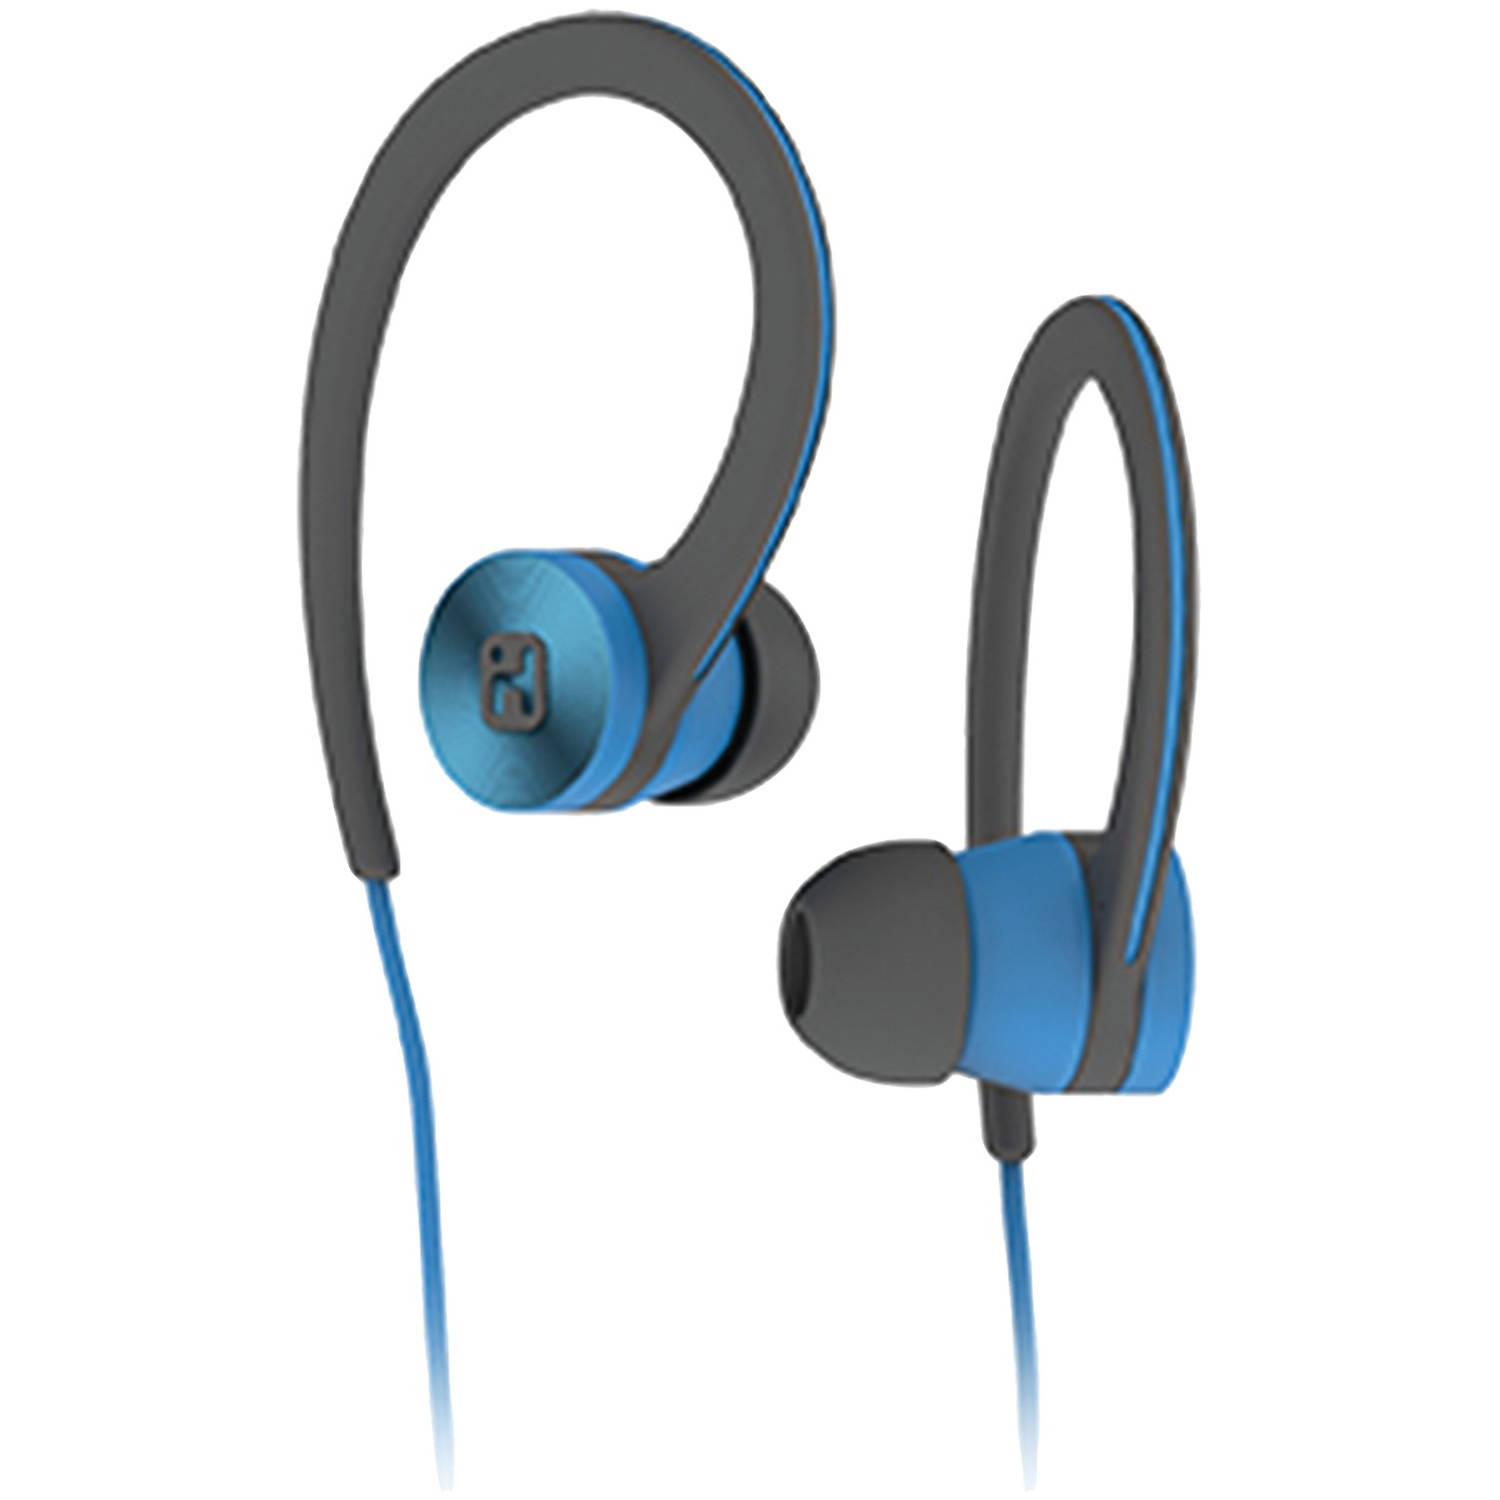 Ihome Ib28blc Over-ear Sport Headphones (Blue/Black)